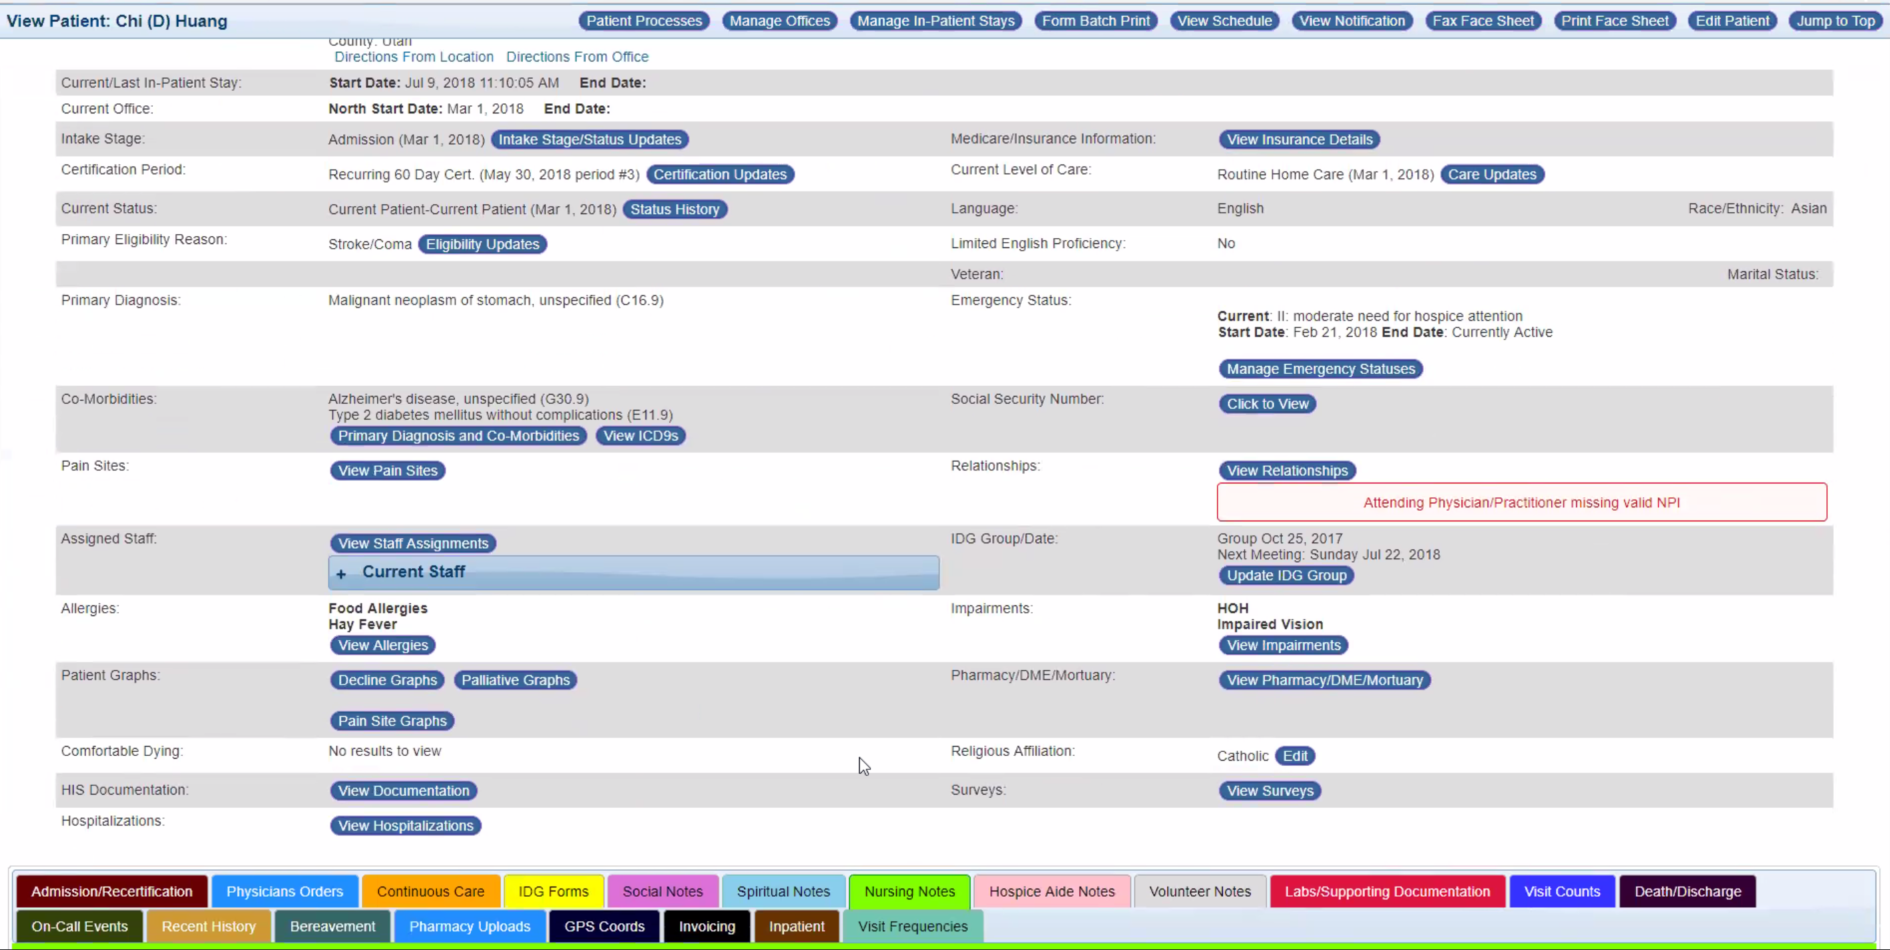 Comprehensive patient record with easy access to key information